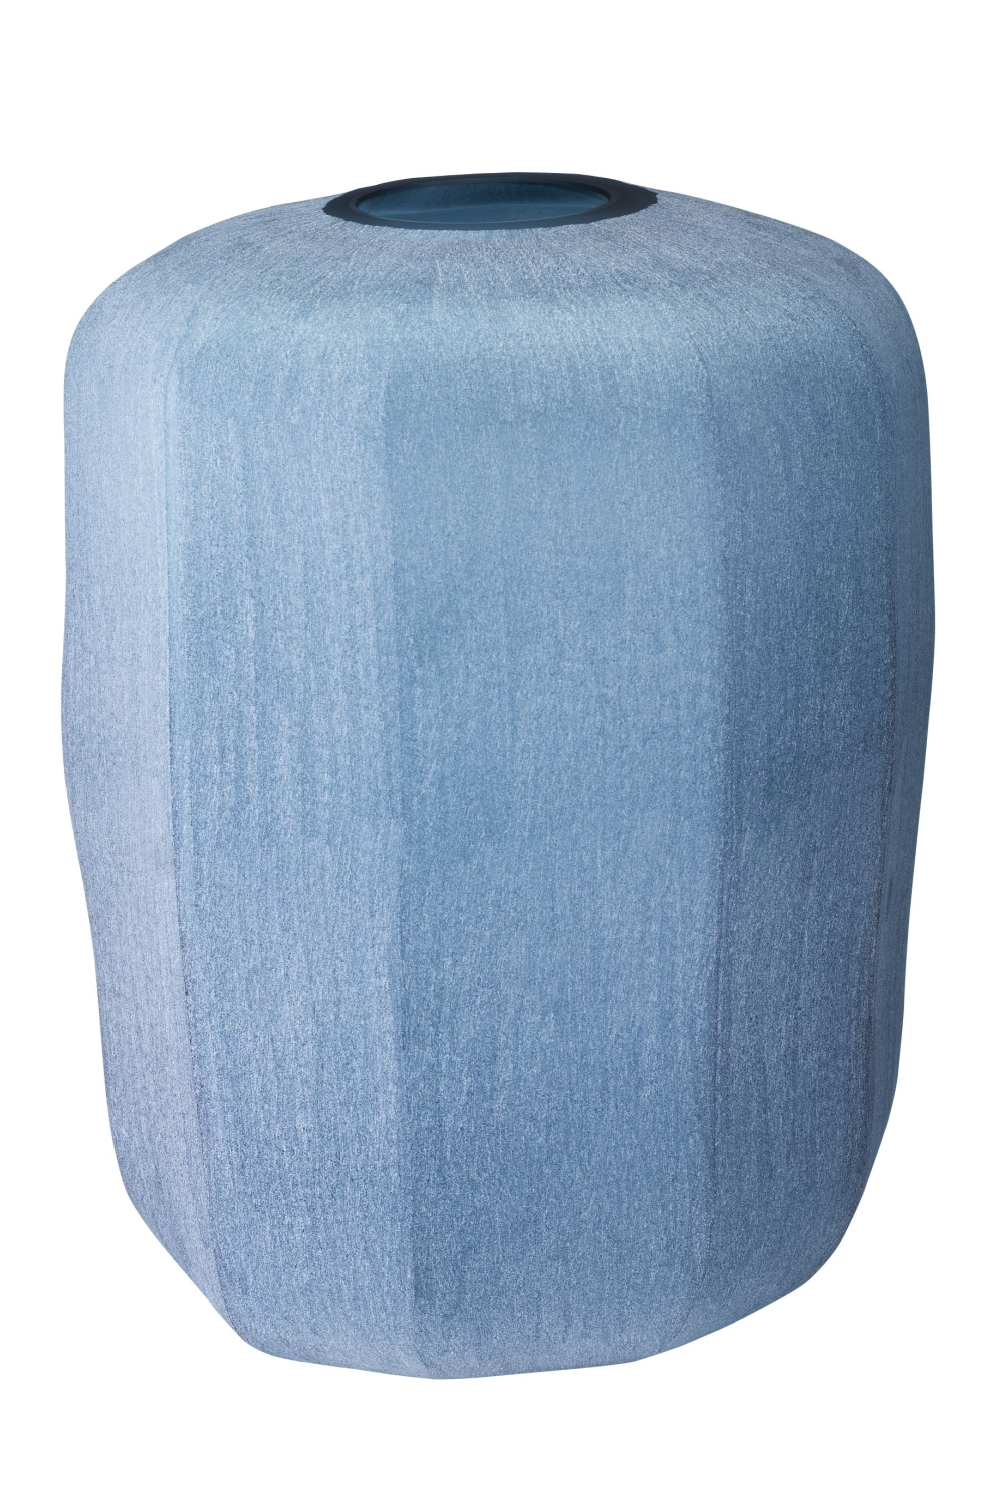 Blue Hand Blown Glass Vase | Eichholtz Avance L